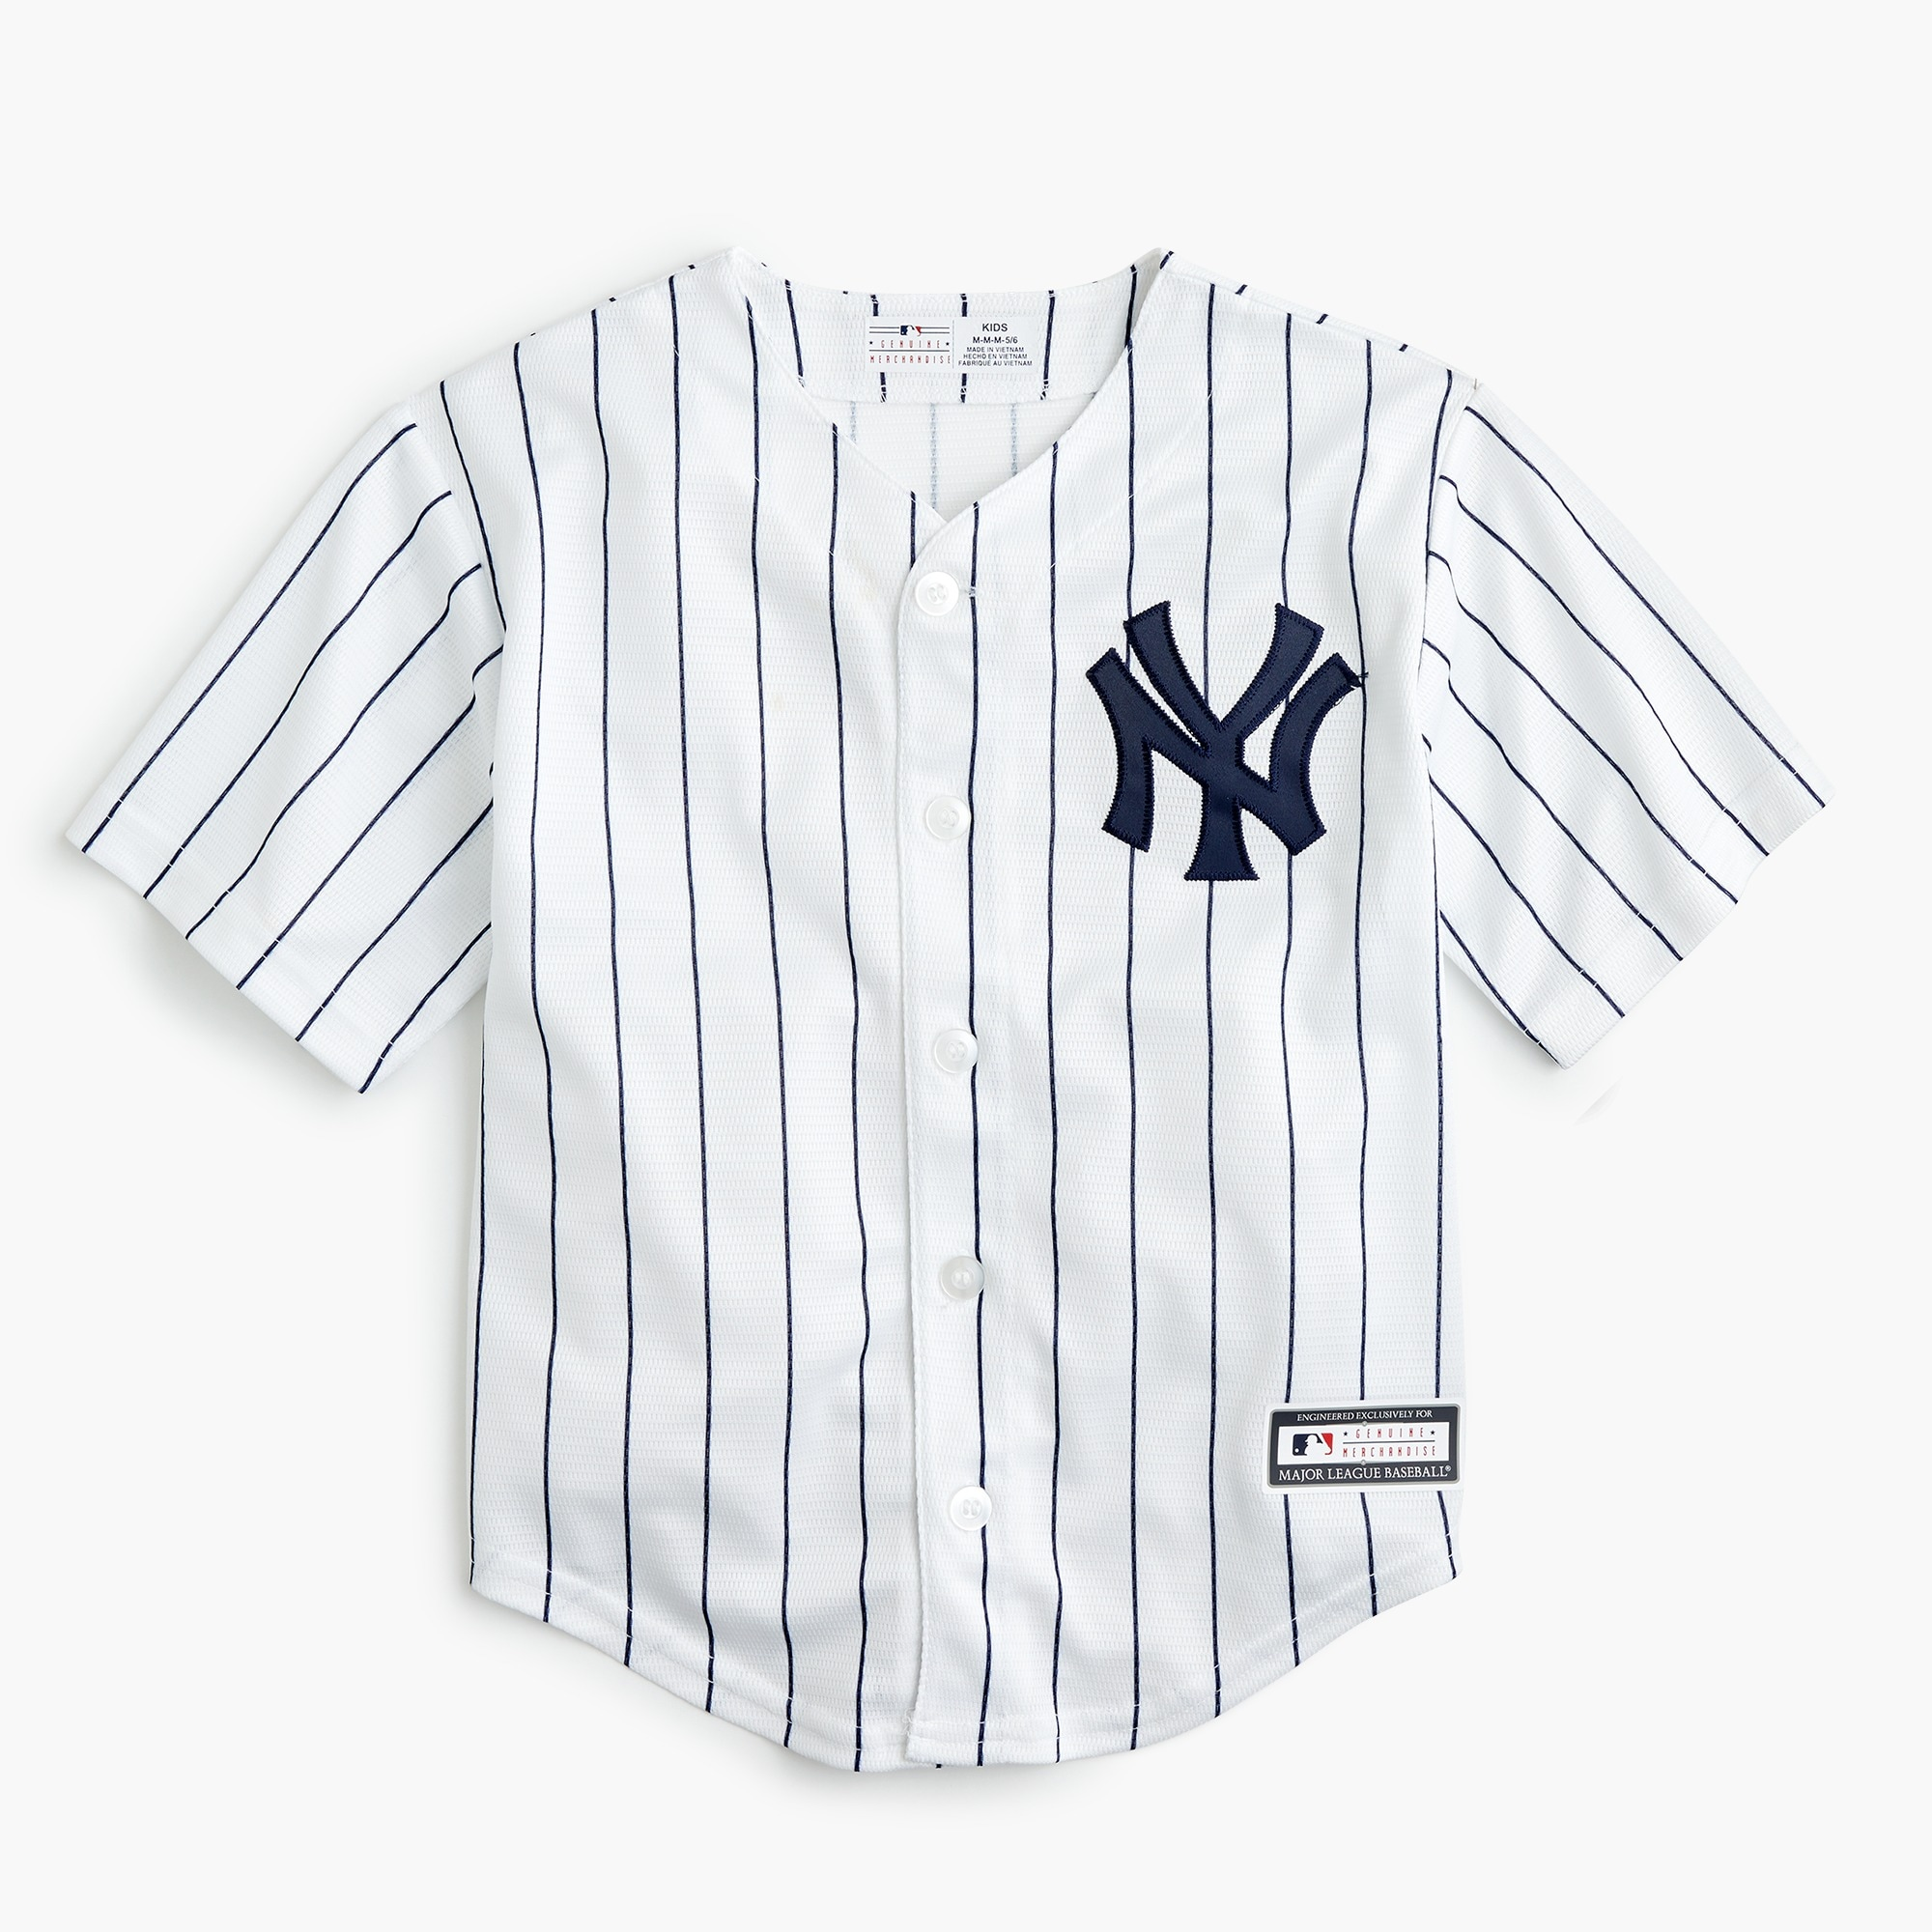 Kids' New York Yankees jersey in larger sizes